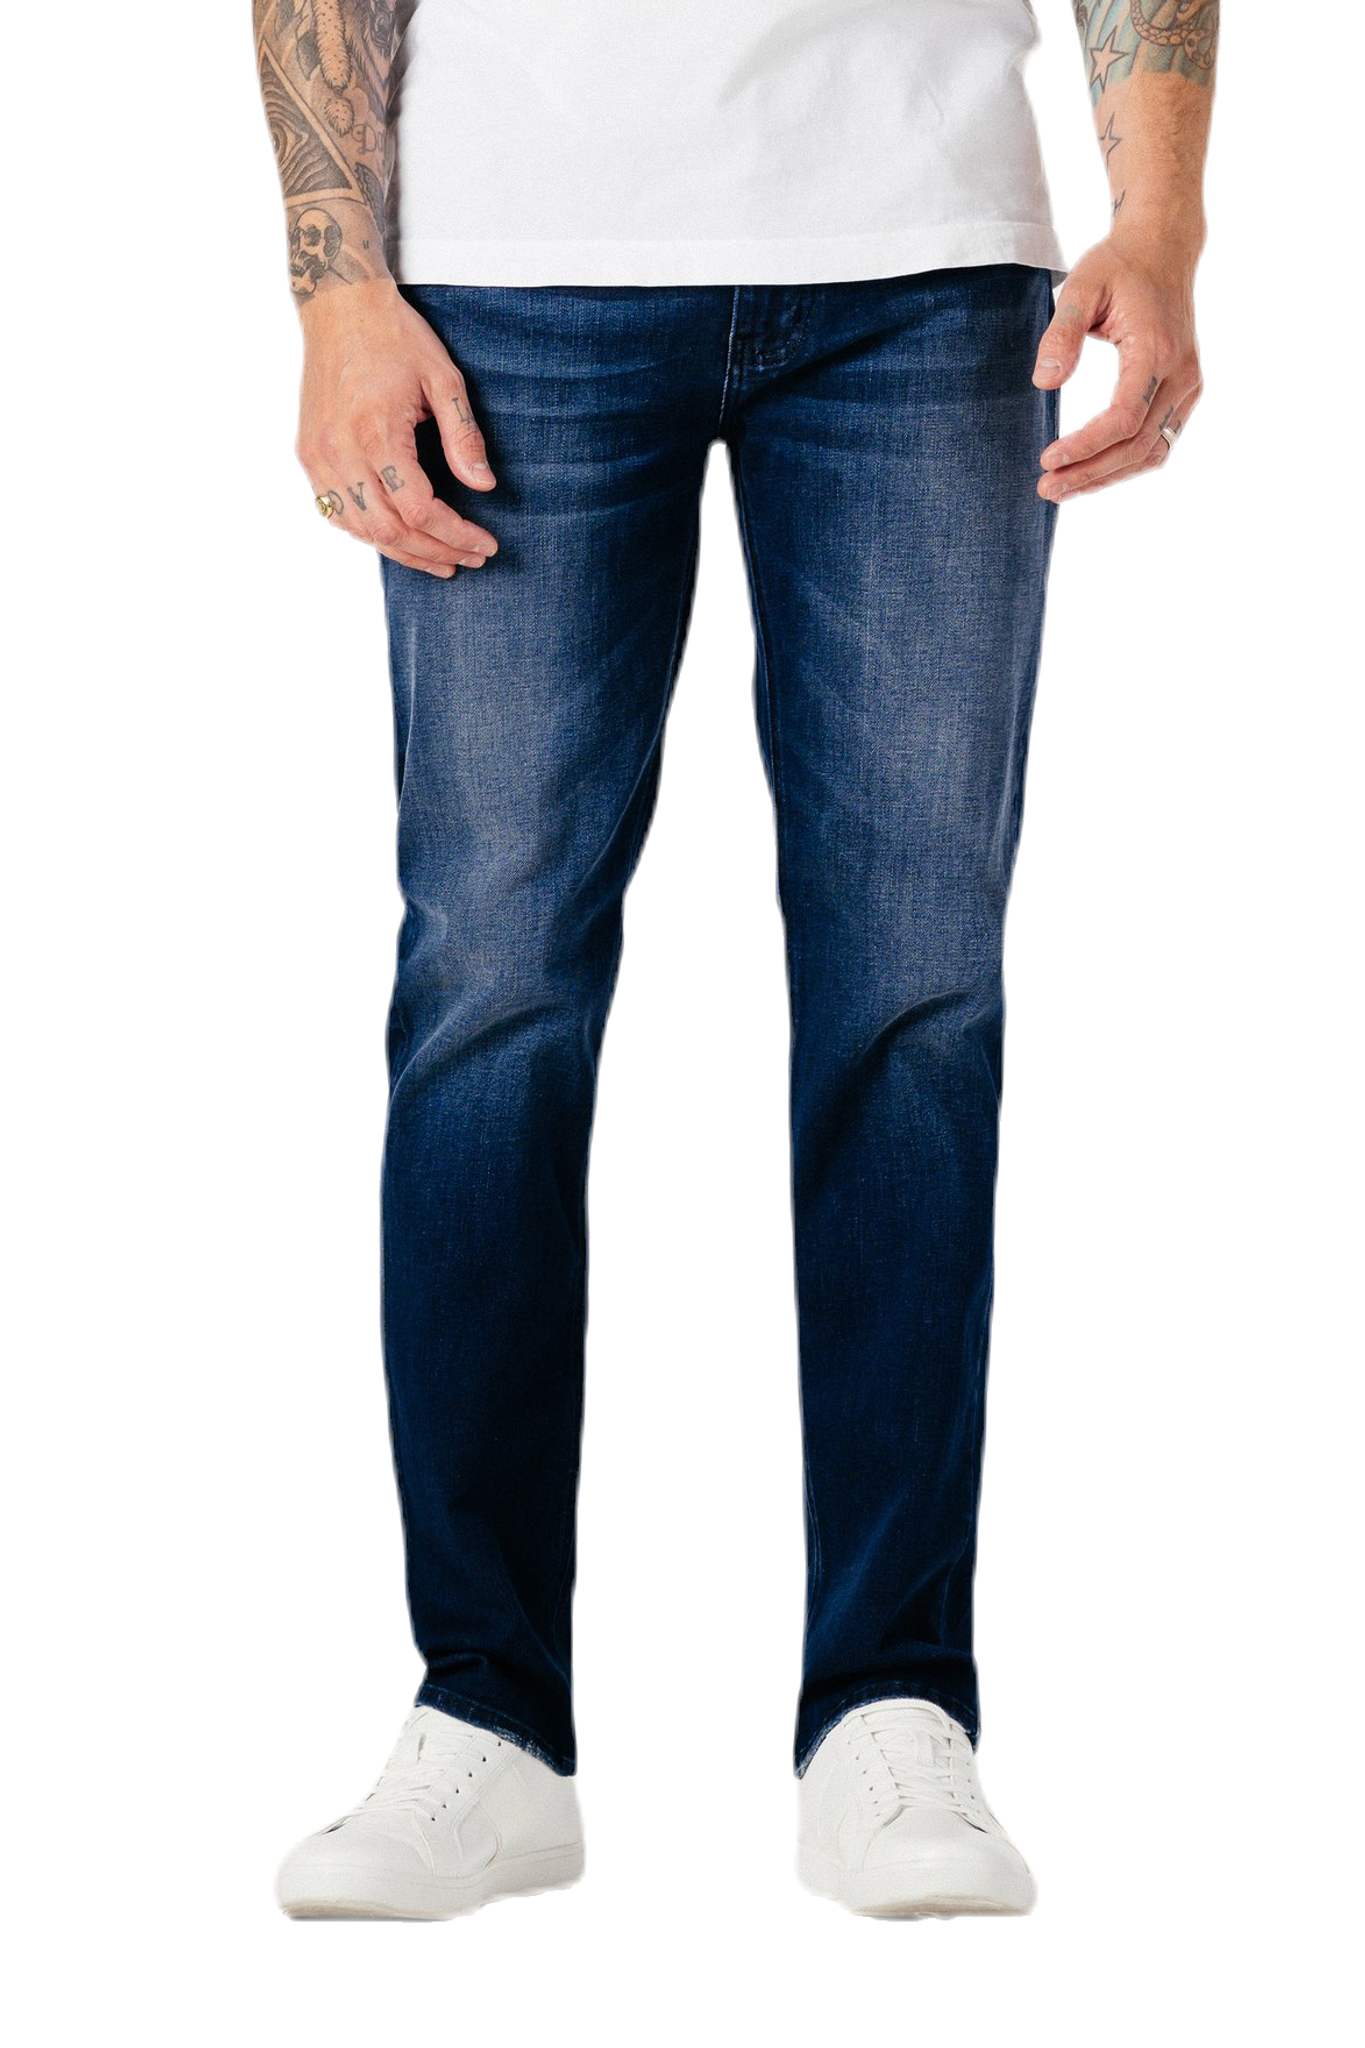 Vigorous sanding and whiskering burnish the perfectly faded blues of skinny, contour-hugging jeans made with plenty of stretch to keep you moving. Brought to you from Fidelity under the new label Modern American, these comfy jeans are lightweight with stretch, ensuring they feel soft while retaining their durability. The perfect pair of jeans.  91% Cotton 6% Elasterell 3% Spandex Machine wash cold and lay flat to dry.